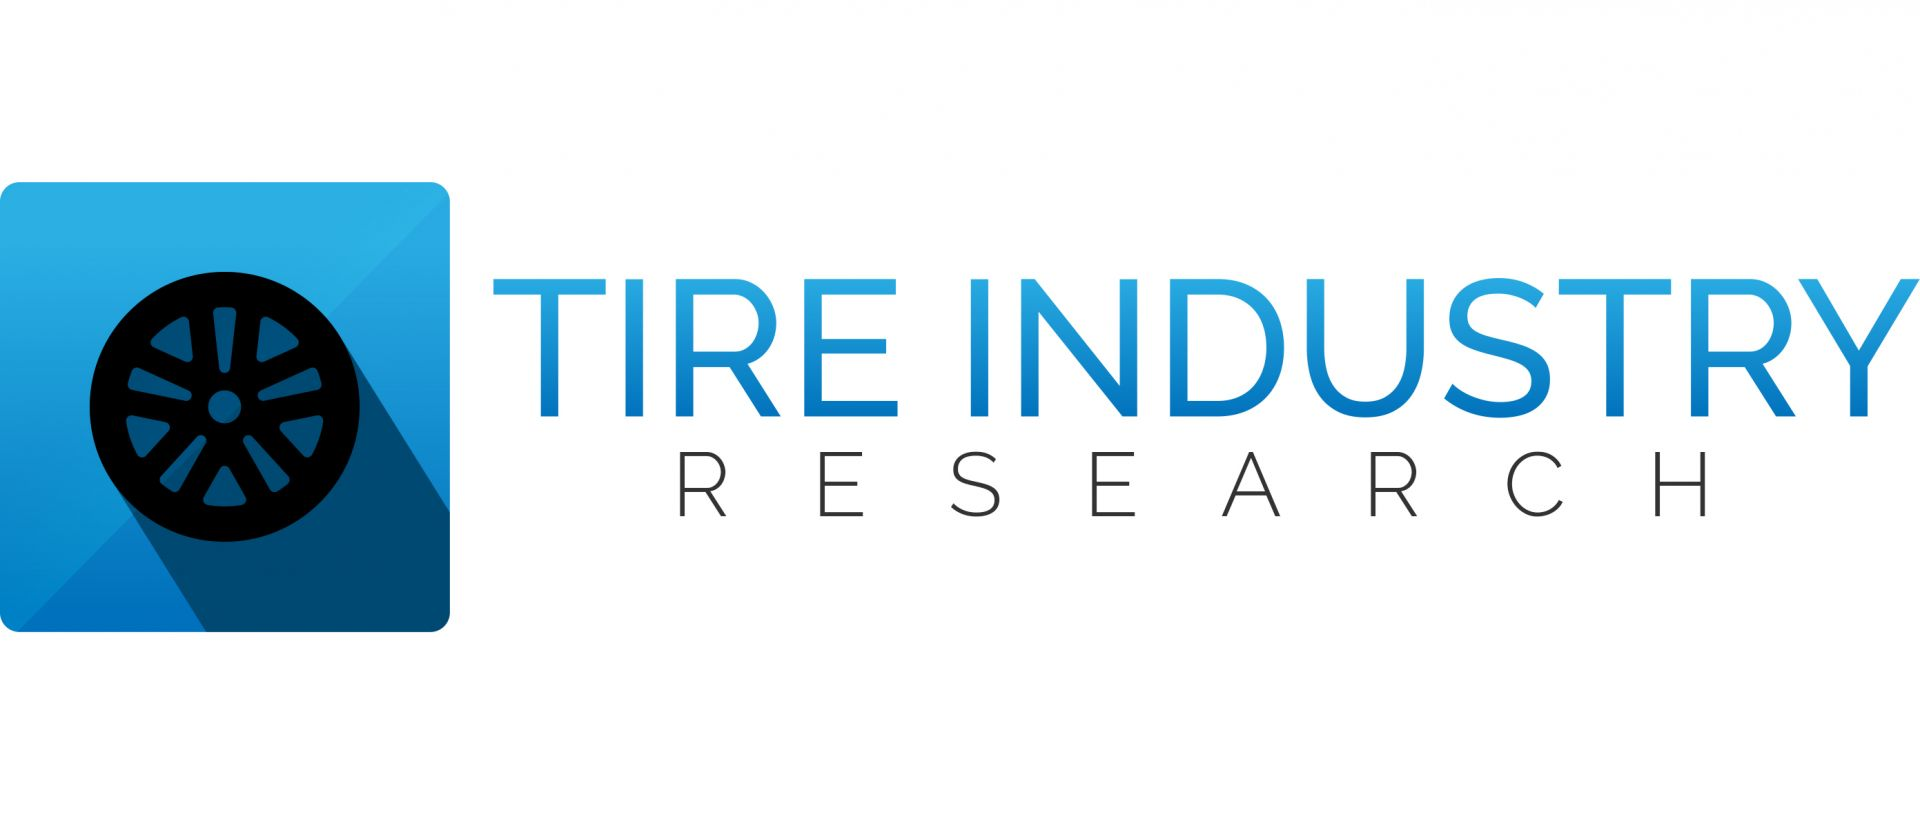 Tire Industry Research